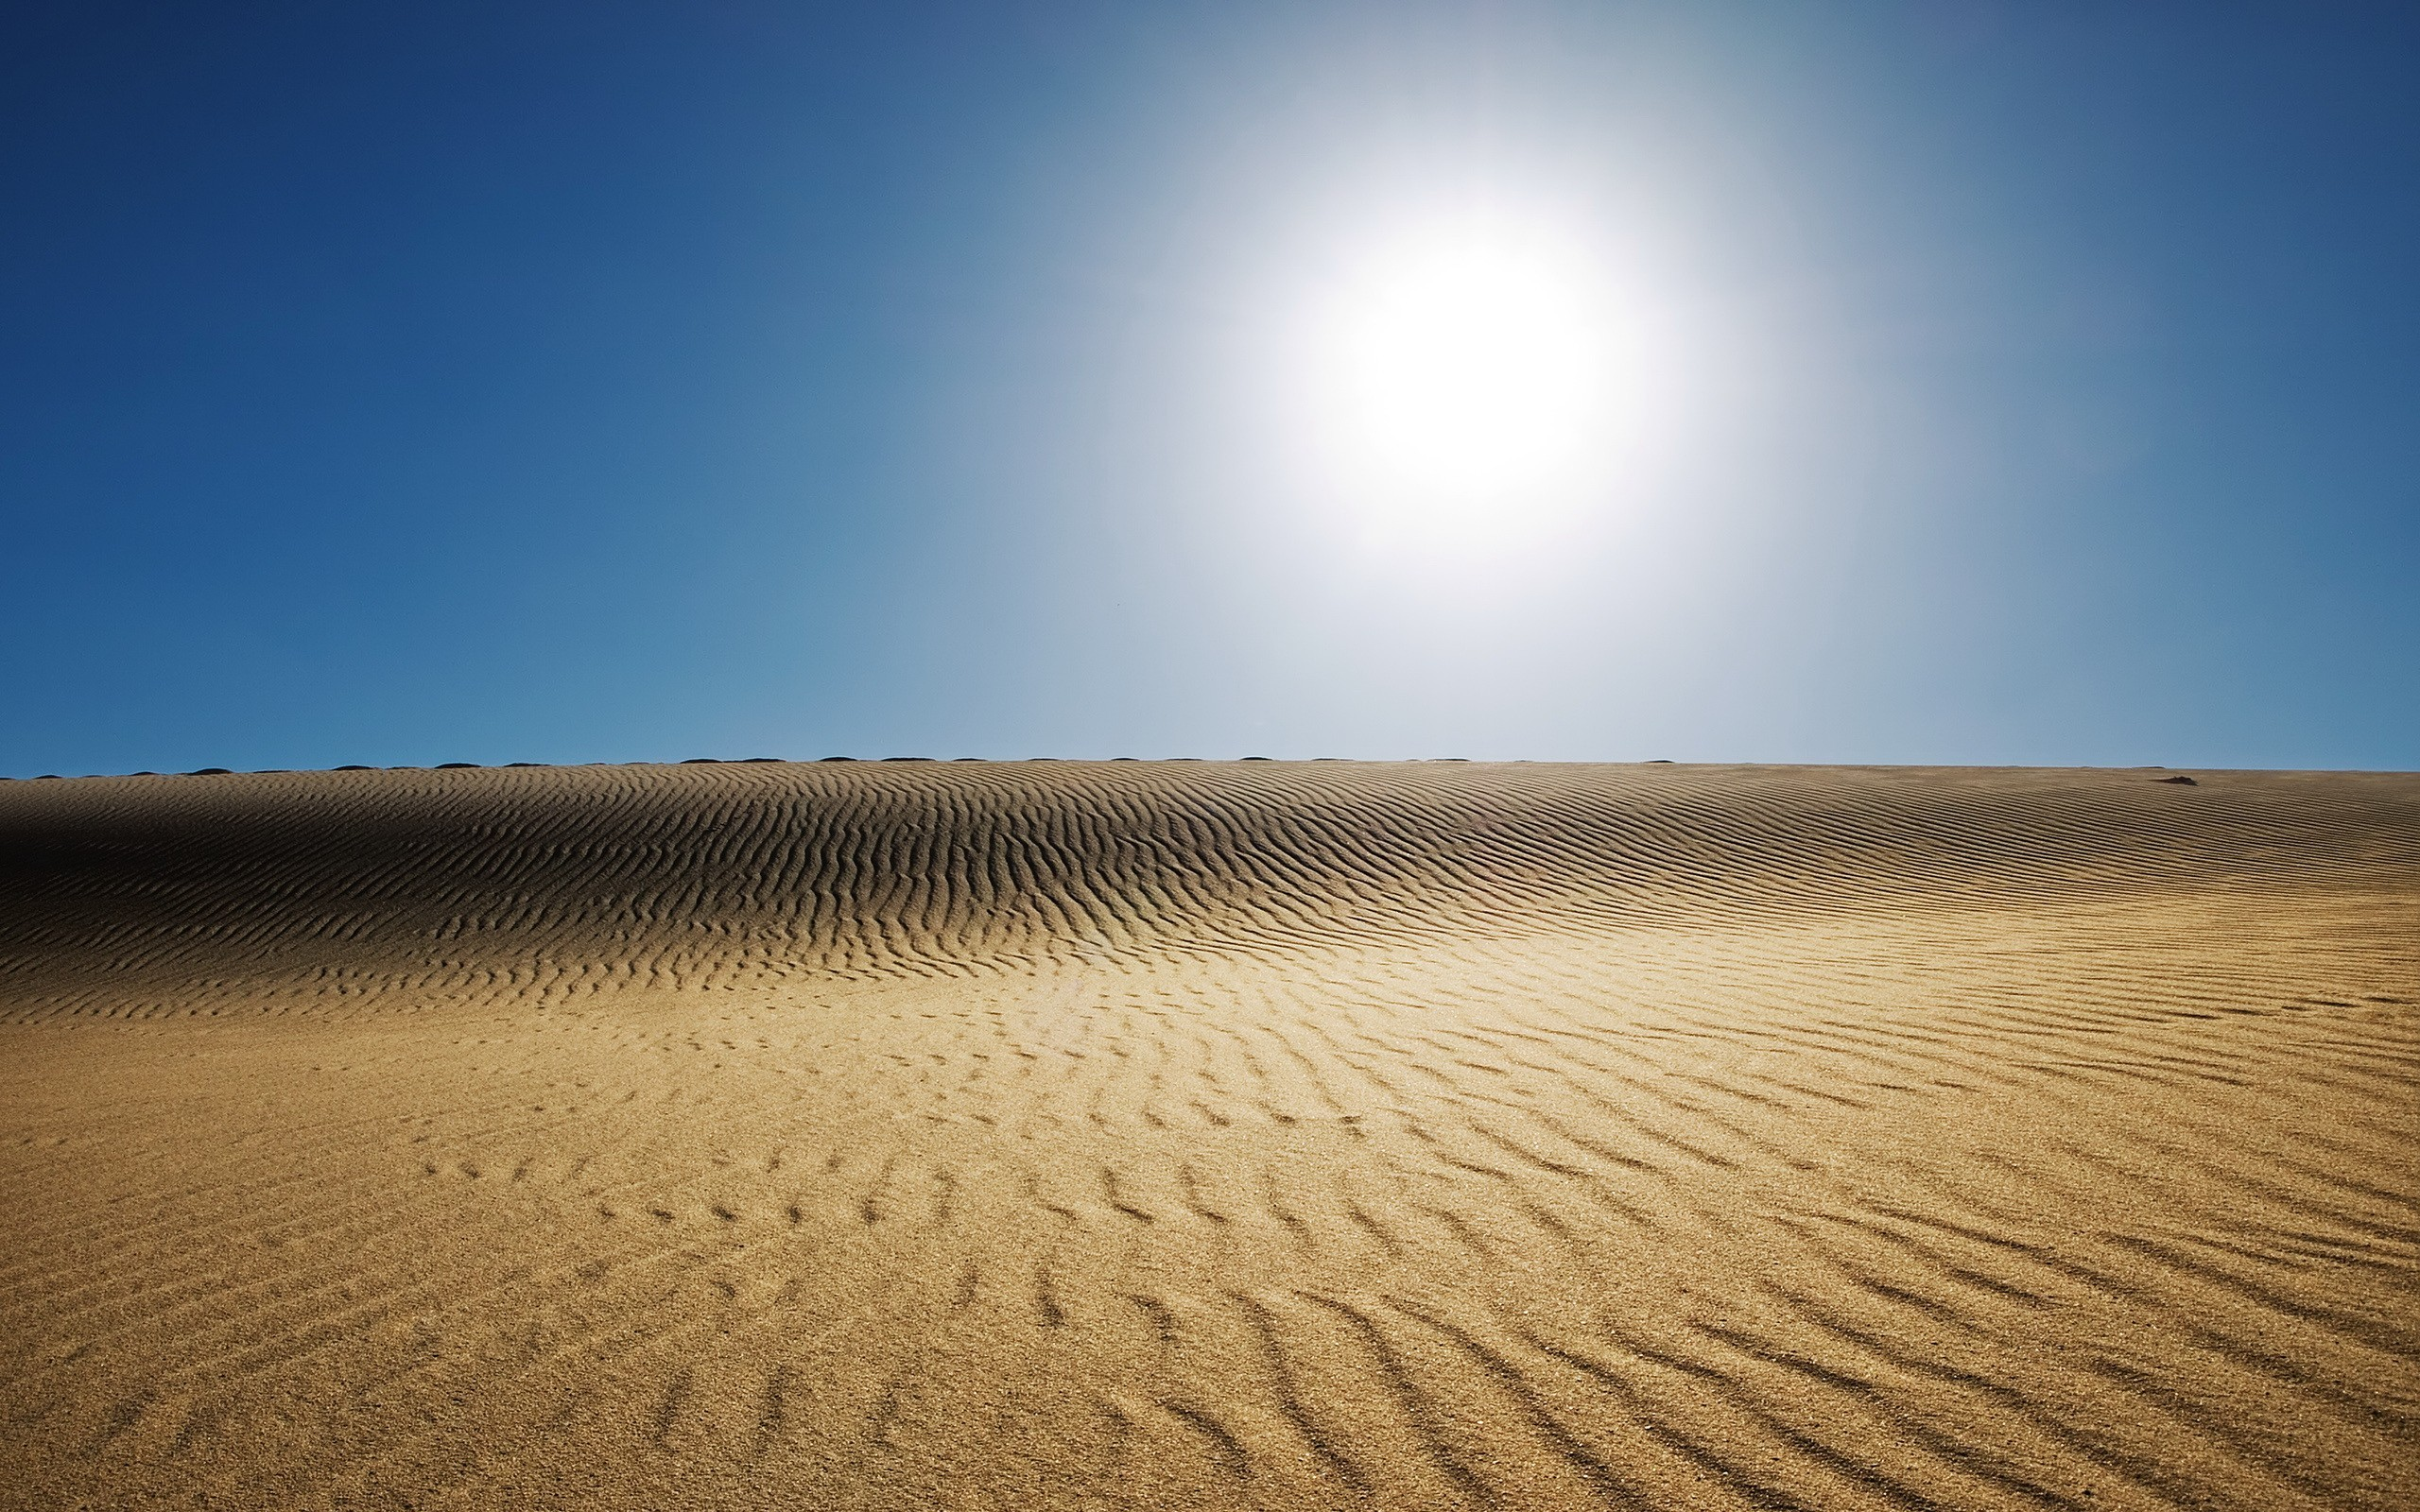 Daily Wallpaper: Desert Ripples | I Like To Waste My Time